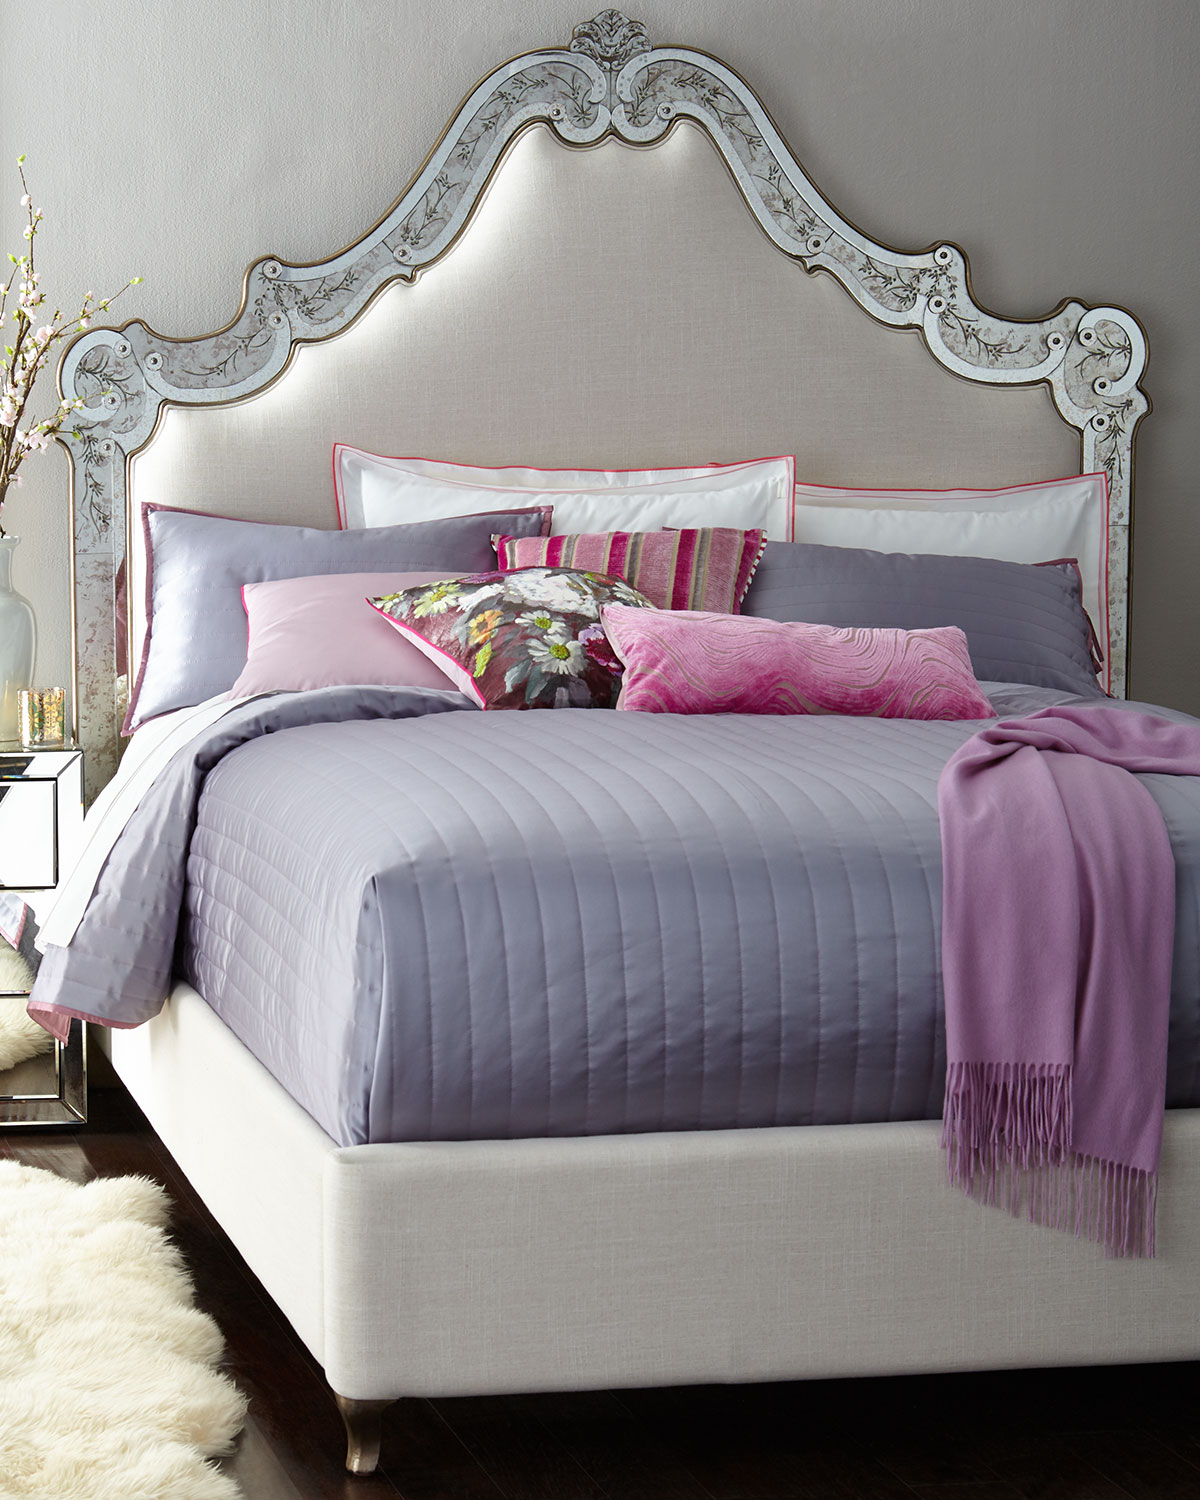 Cynthia Rowley for Hooker Furniture Venetian California King Mirrored Bed